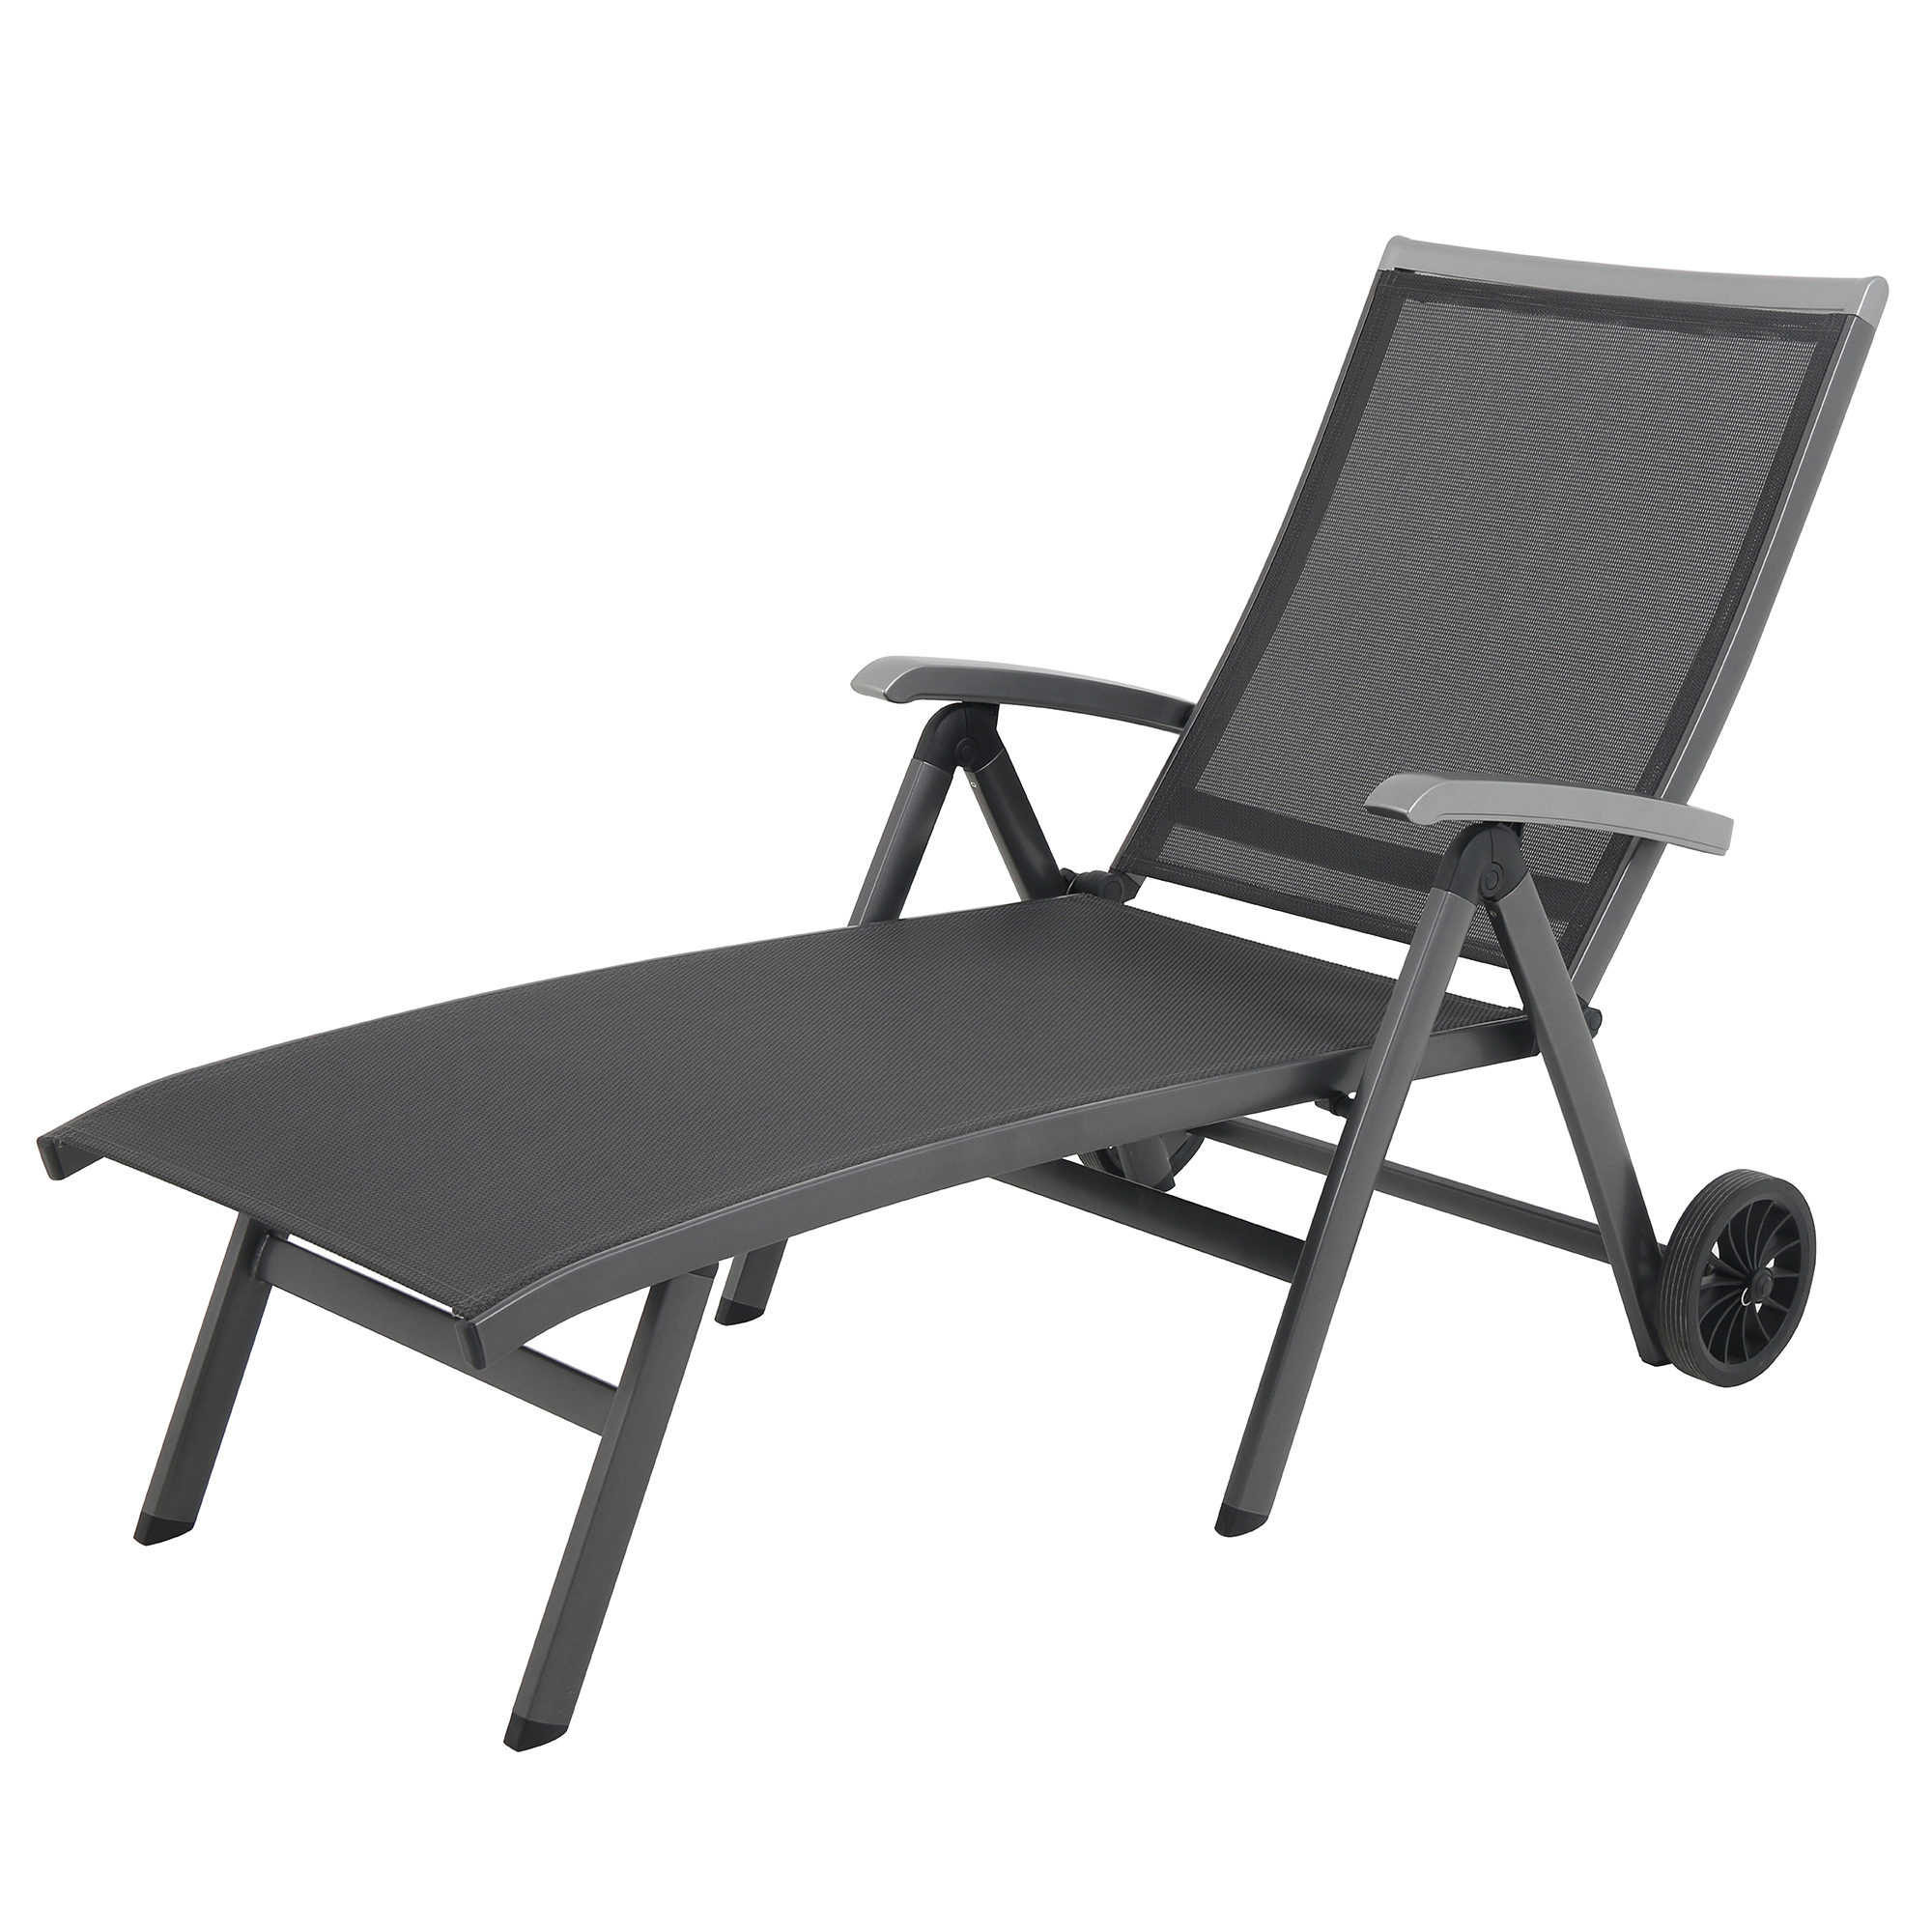 Royal Garden Ludwig Pool Patio Adjustable Chaise Lounge C...